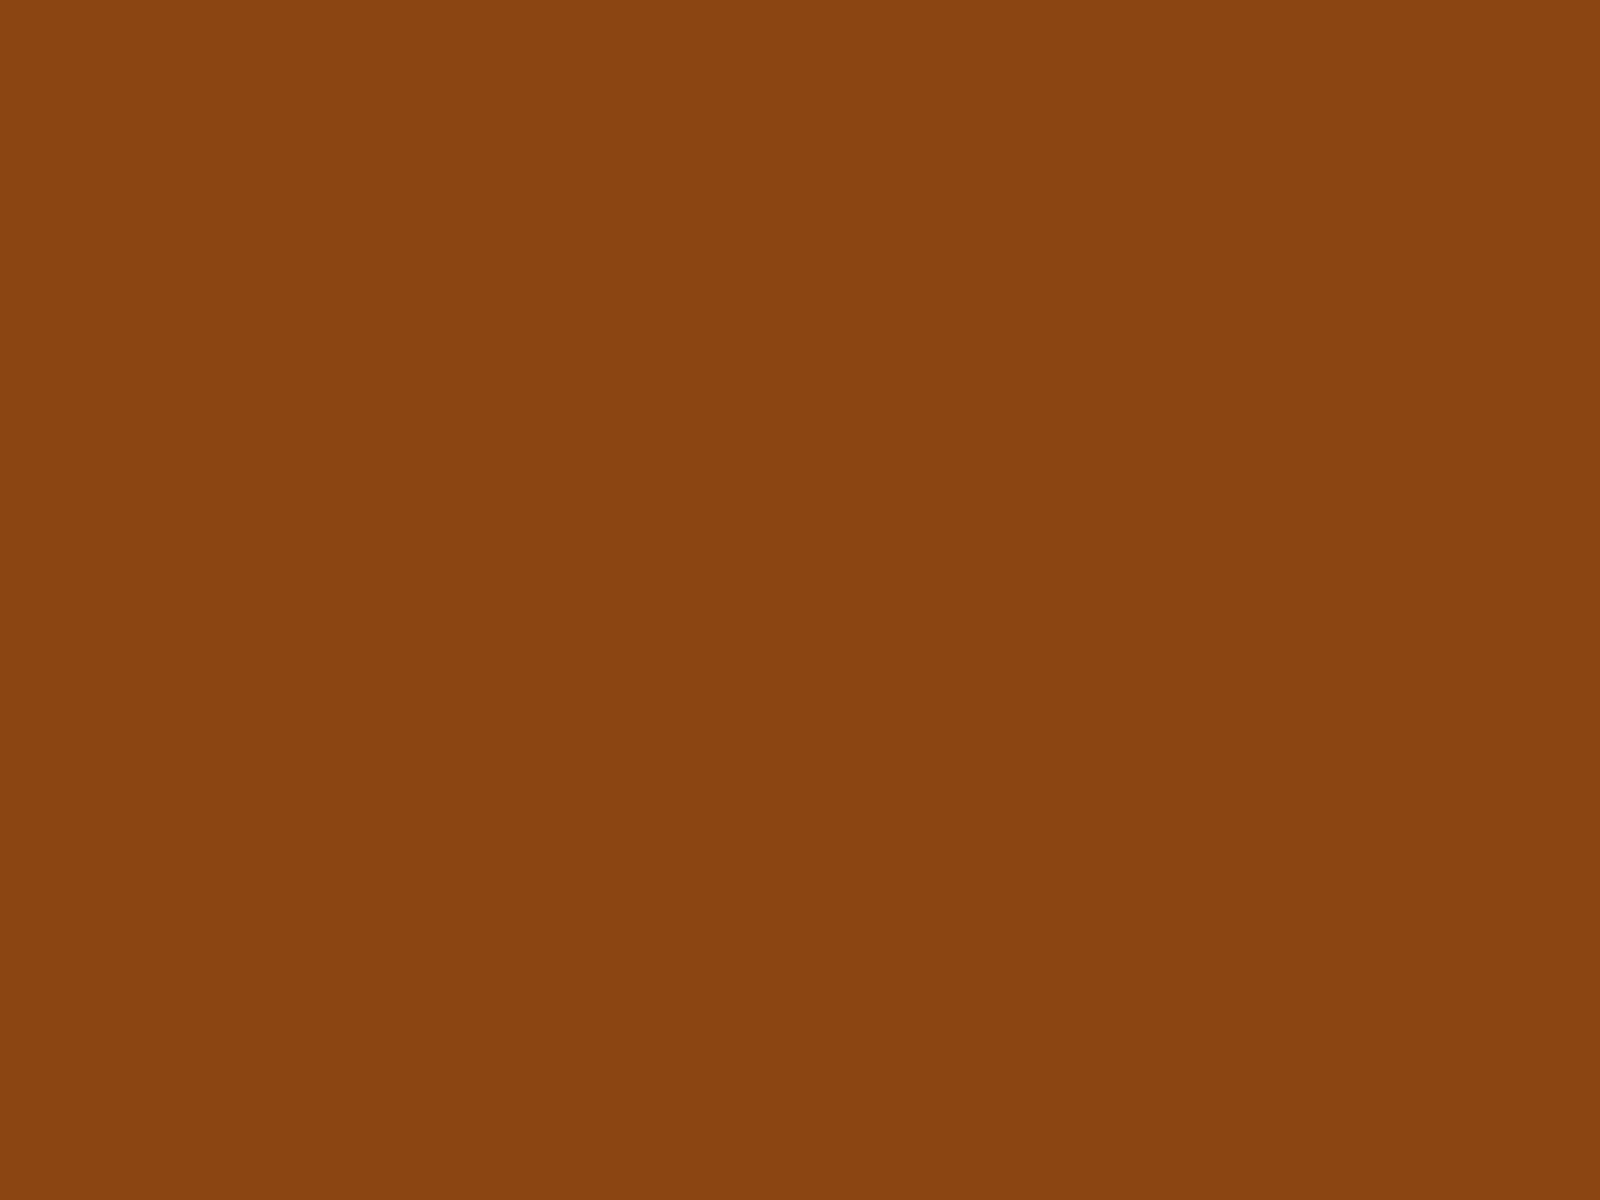 1600x1200 Saddle Brown Solid Color Background